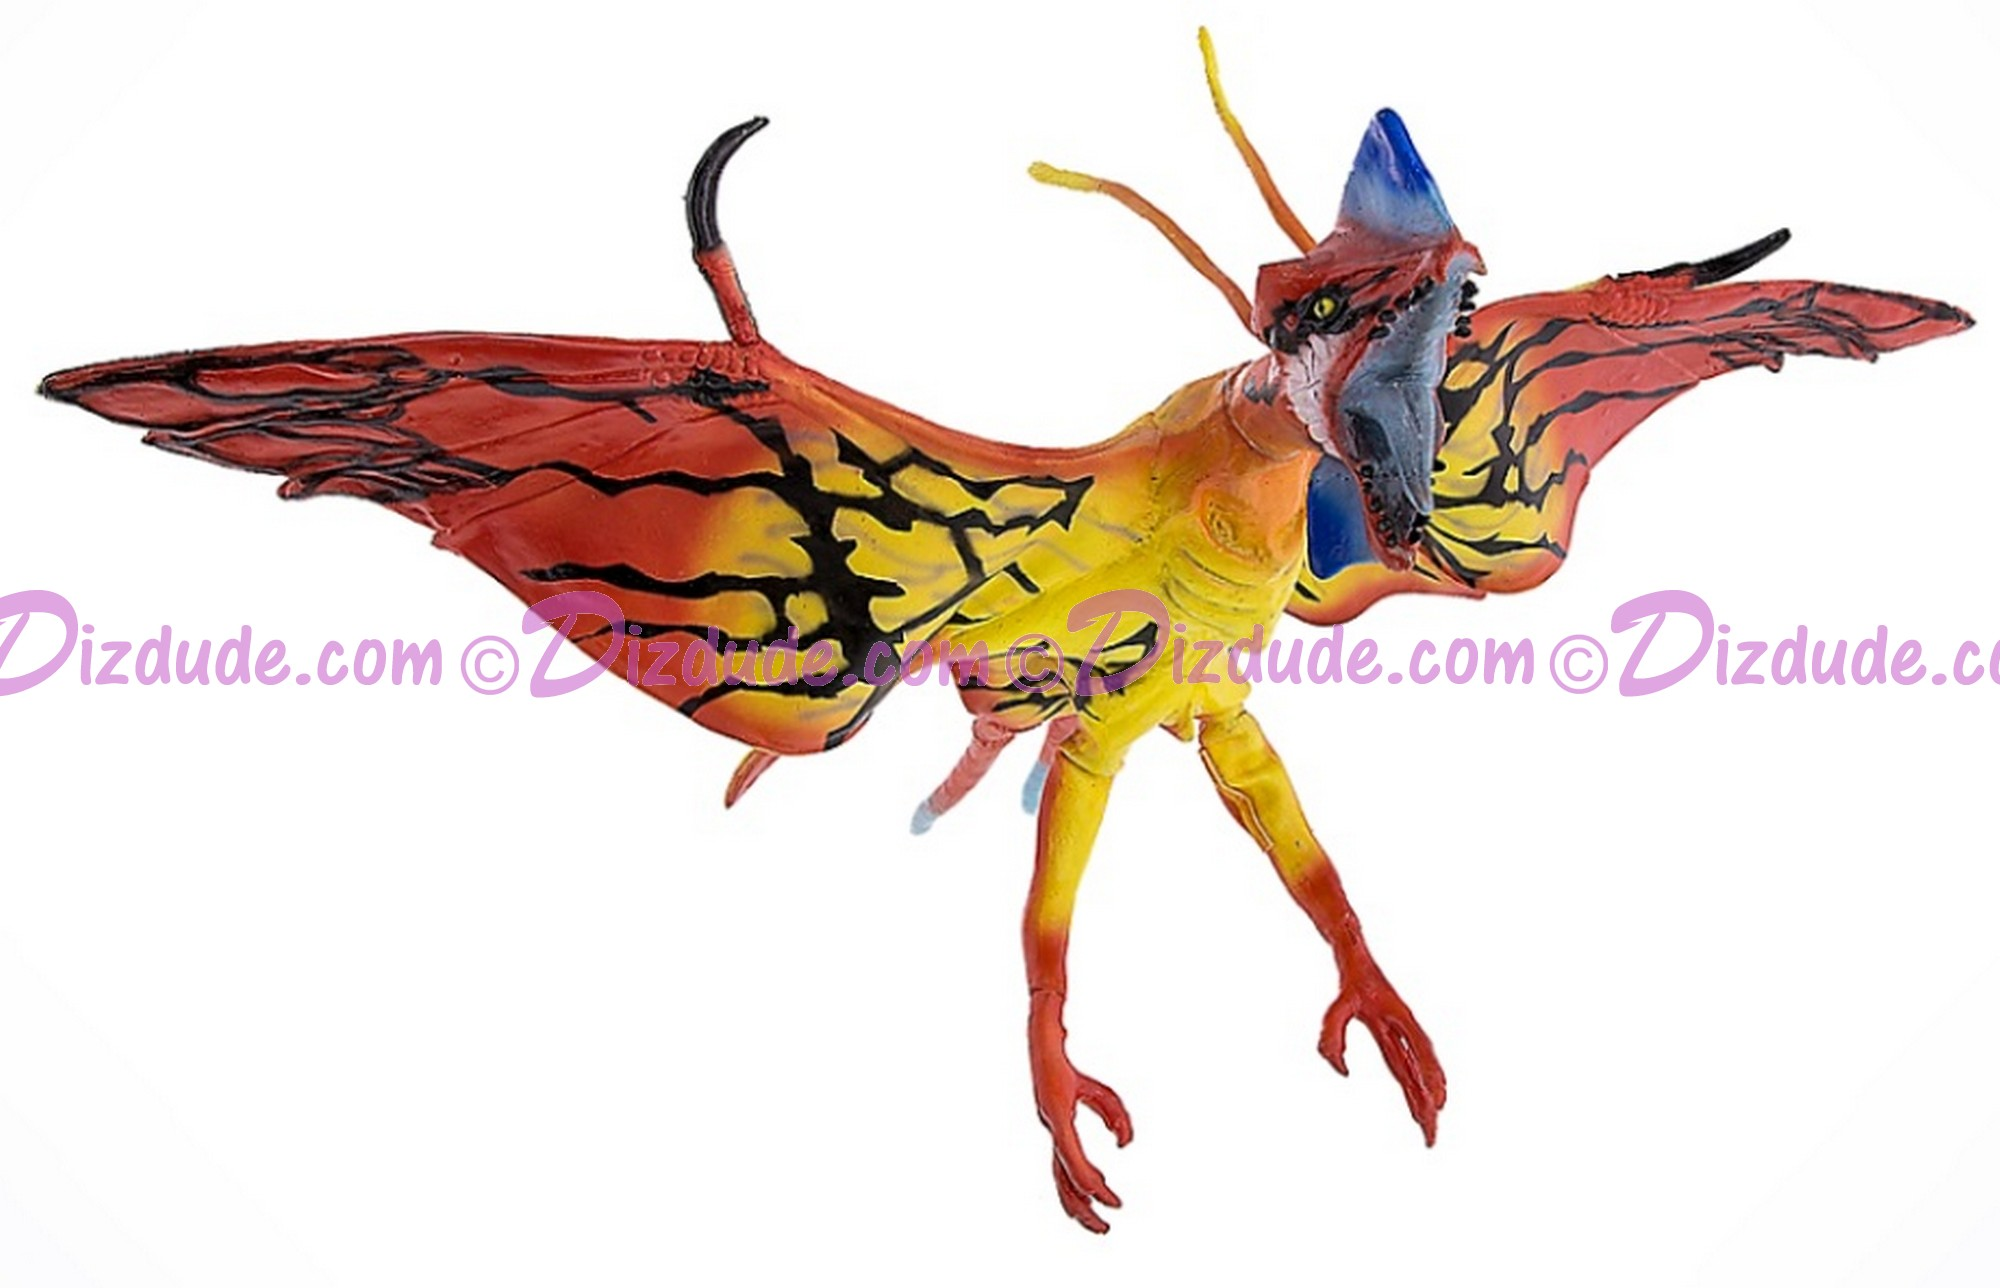 Avatar Leonopteryx 21 inch Latex Figure - Disney Pandora – The World of Avatar